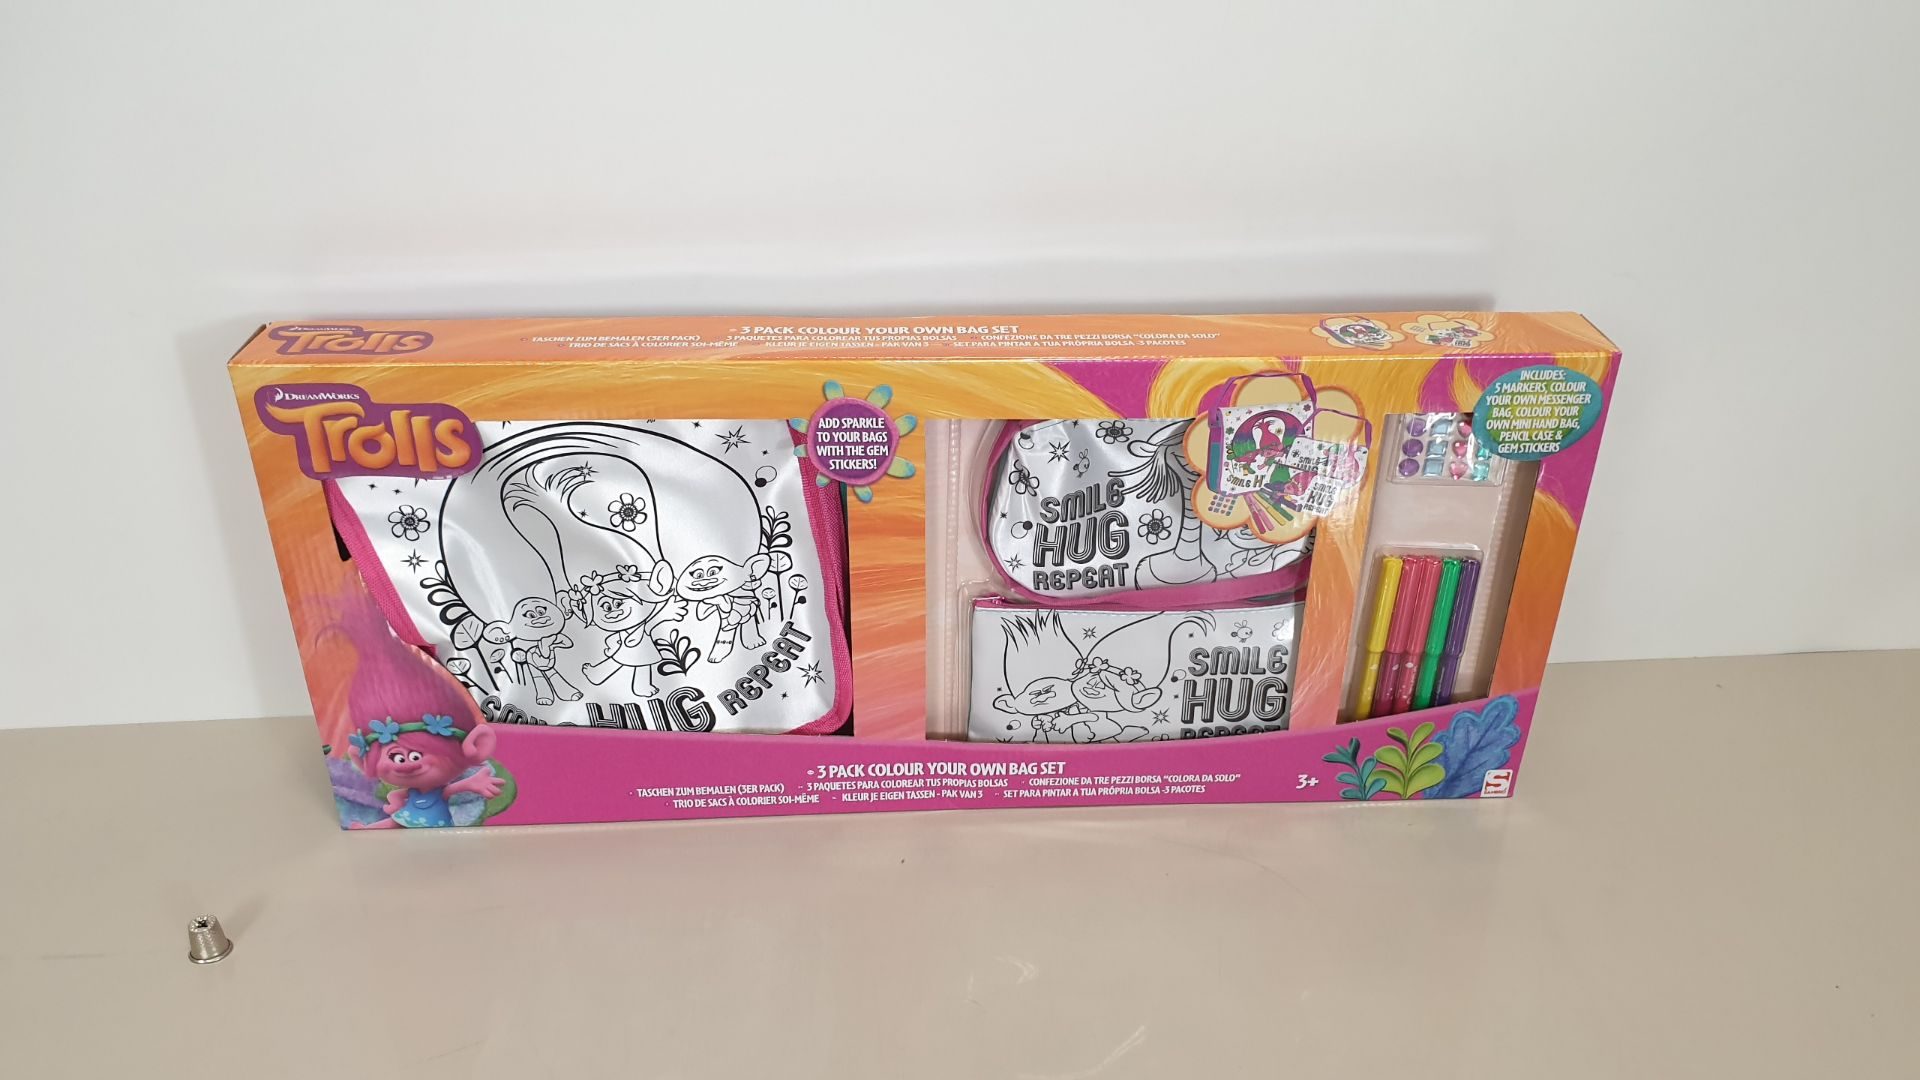 Lot 30 - 60 X BRAND NEW TROLLS (3 PIECE) COLOUR YOUR OWN BAG SET WITH ACCESSORIES IE MARKERS AND GEMS - IN 10